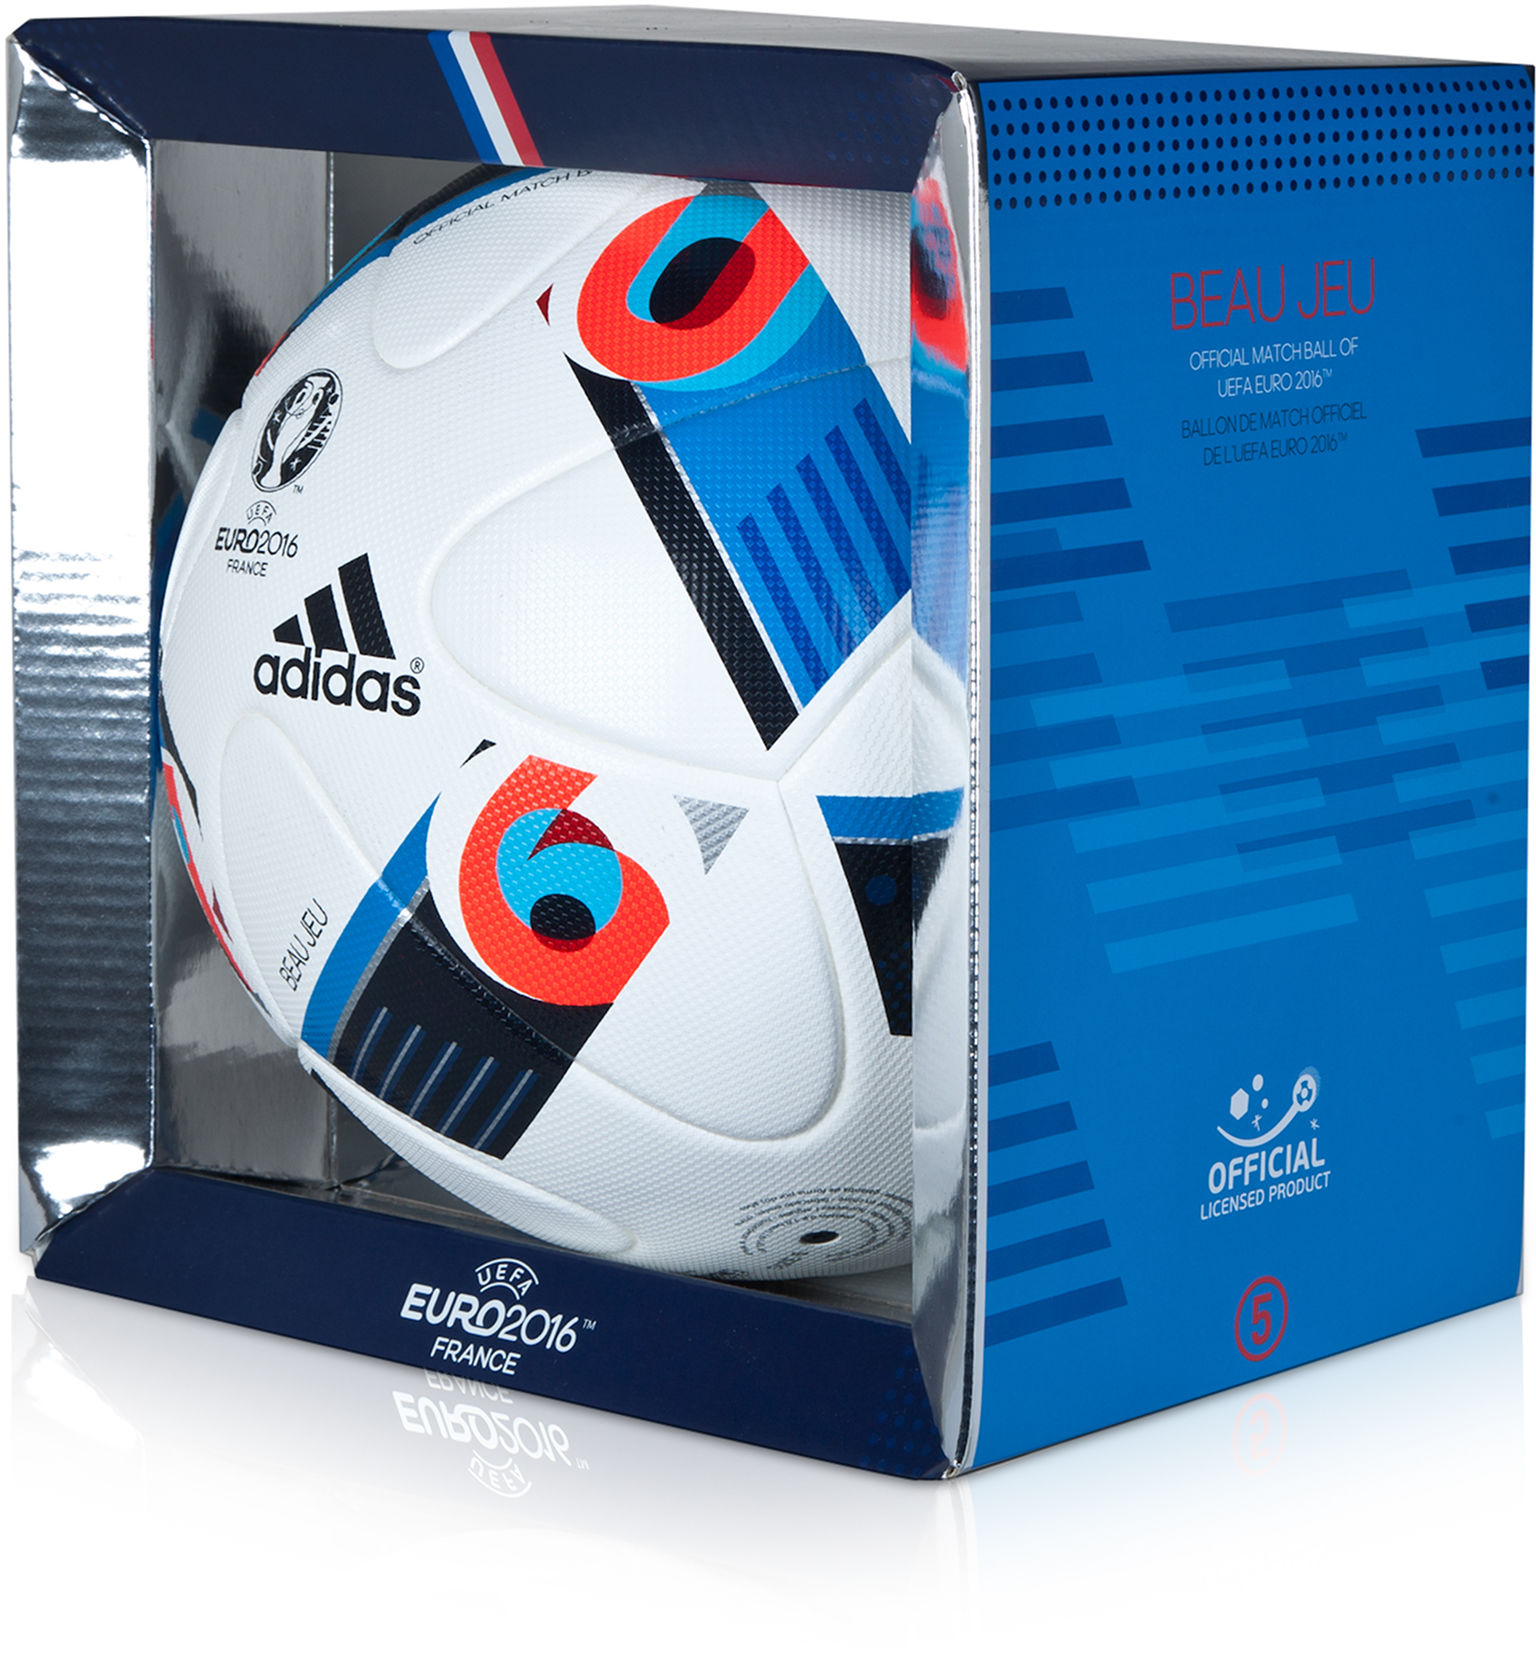 PIŁKA BEAU JEU EURO 2016 OFFICIAL MATCH BALL (ADIDAS) 18604